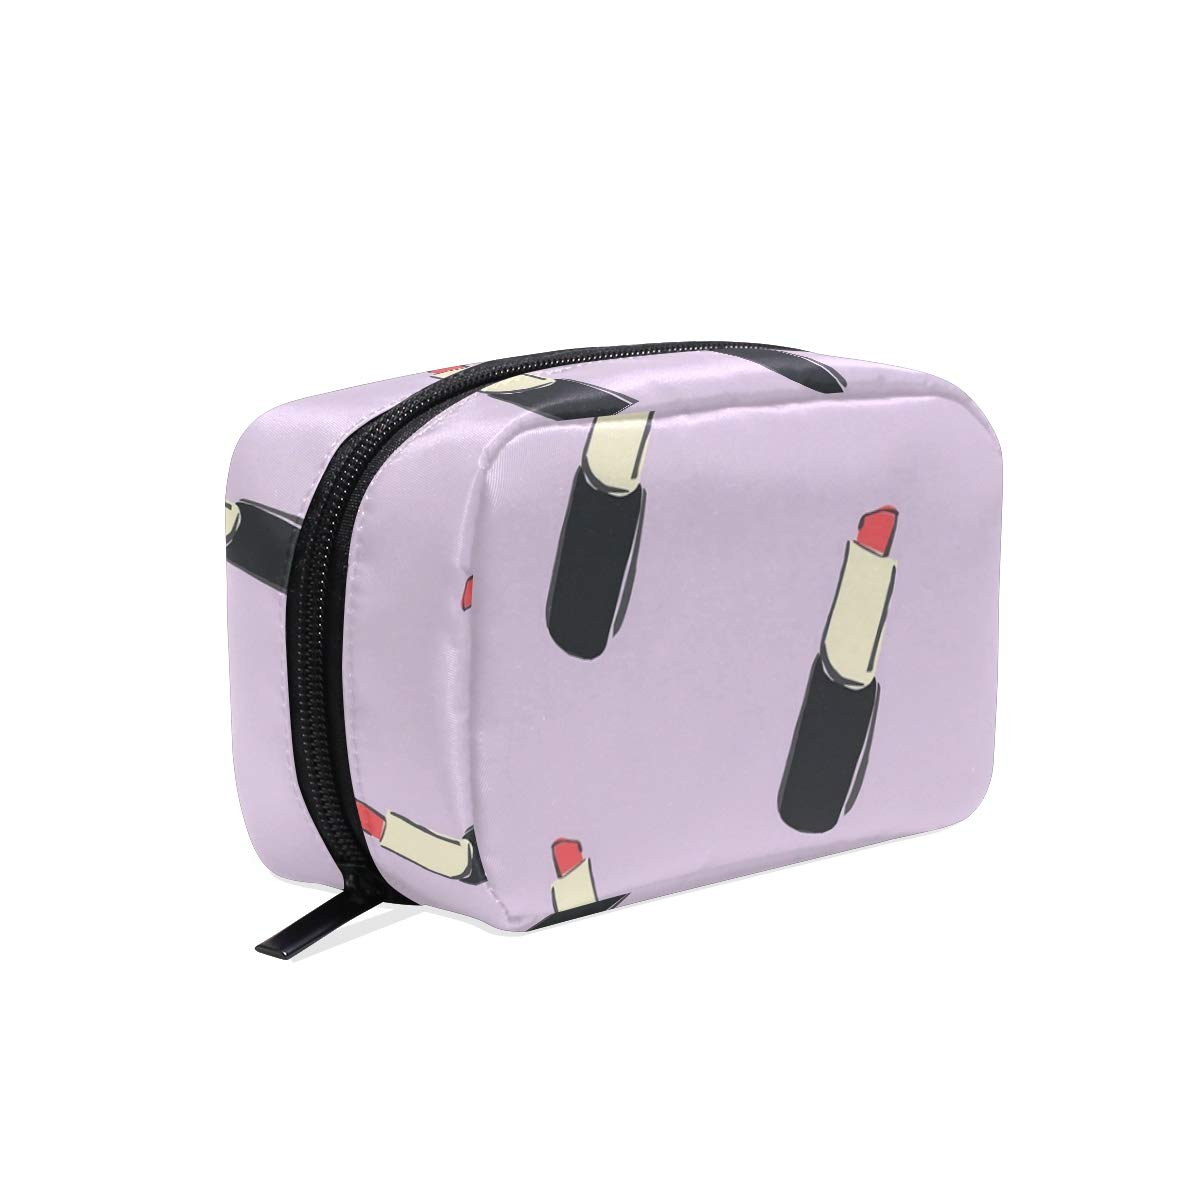 ILEEY Lipstick Pattern Cosmetic Pouch Clutch Makeup Bag Travel Organizer Case Toiletry Pouch for Women